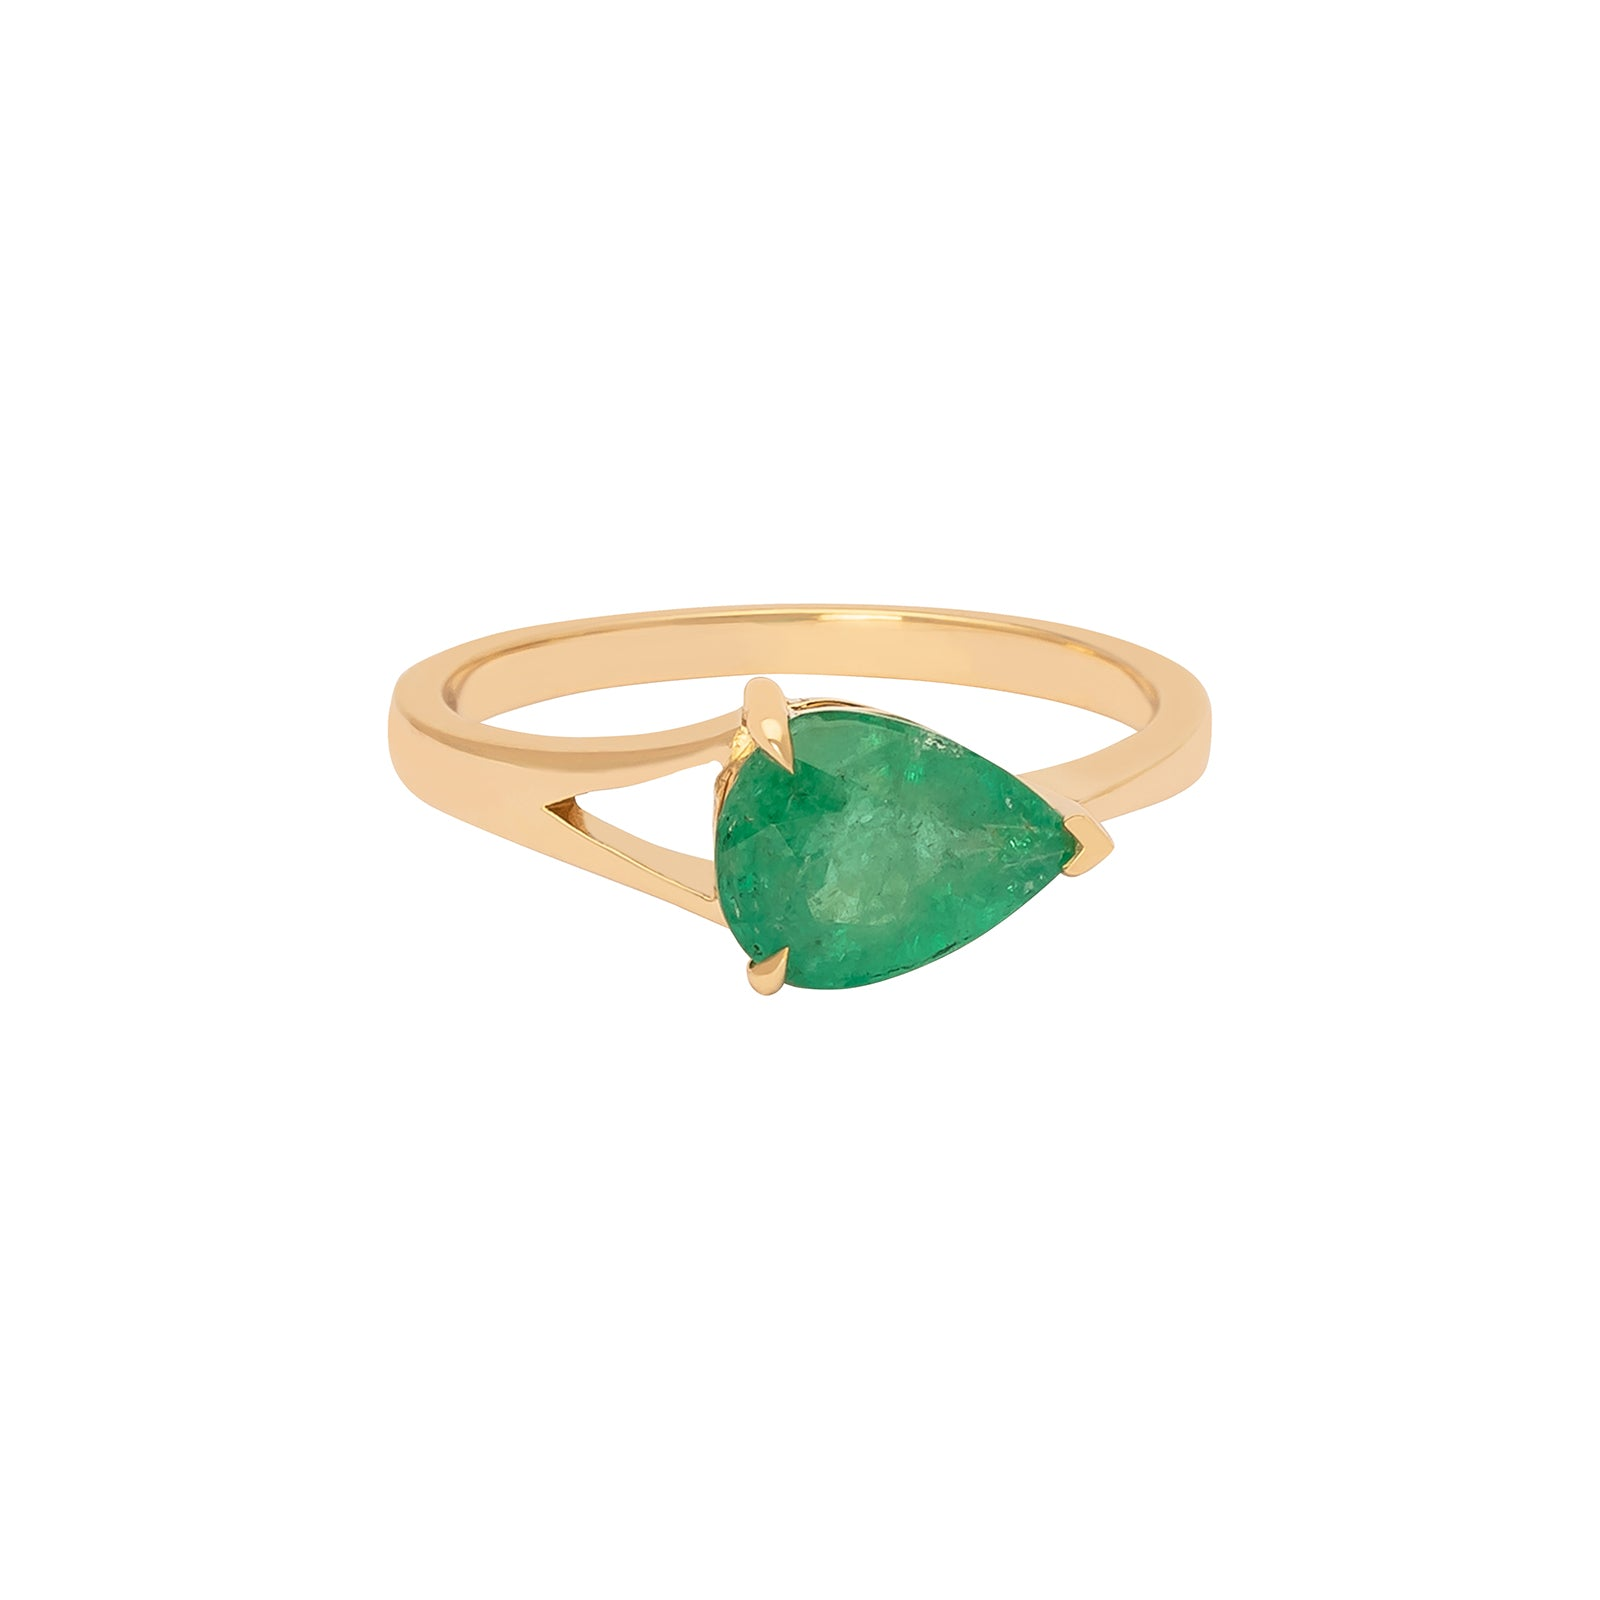 YI Collection Supreme Dewdrop Ring - Emerald - Rings - Broken English Jewelry